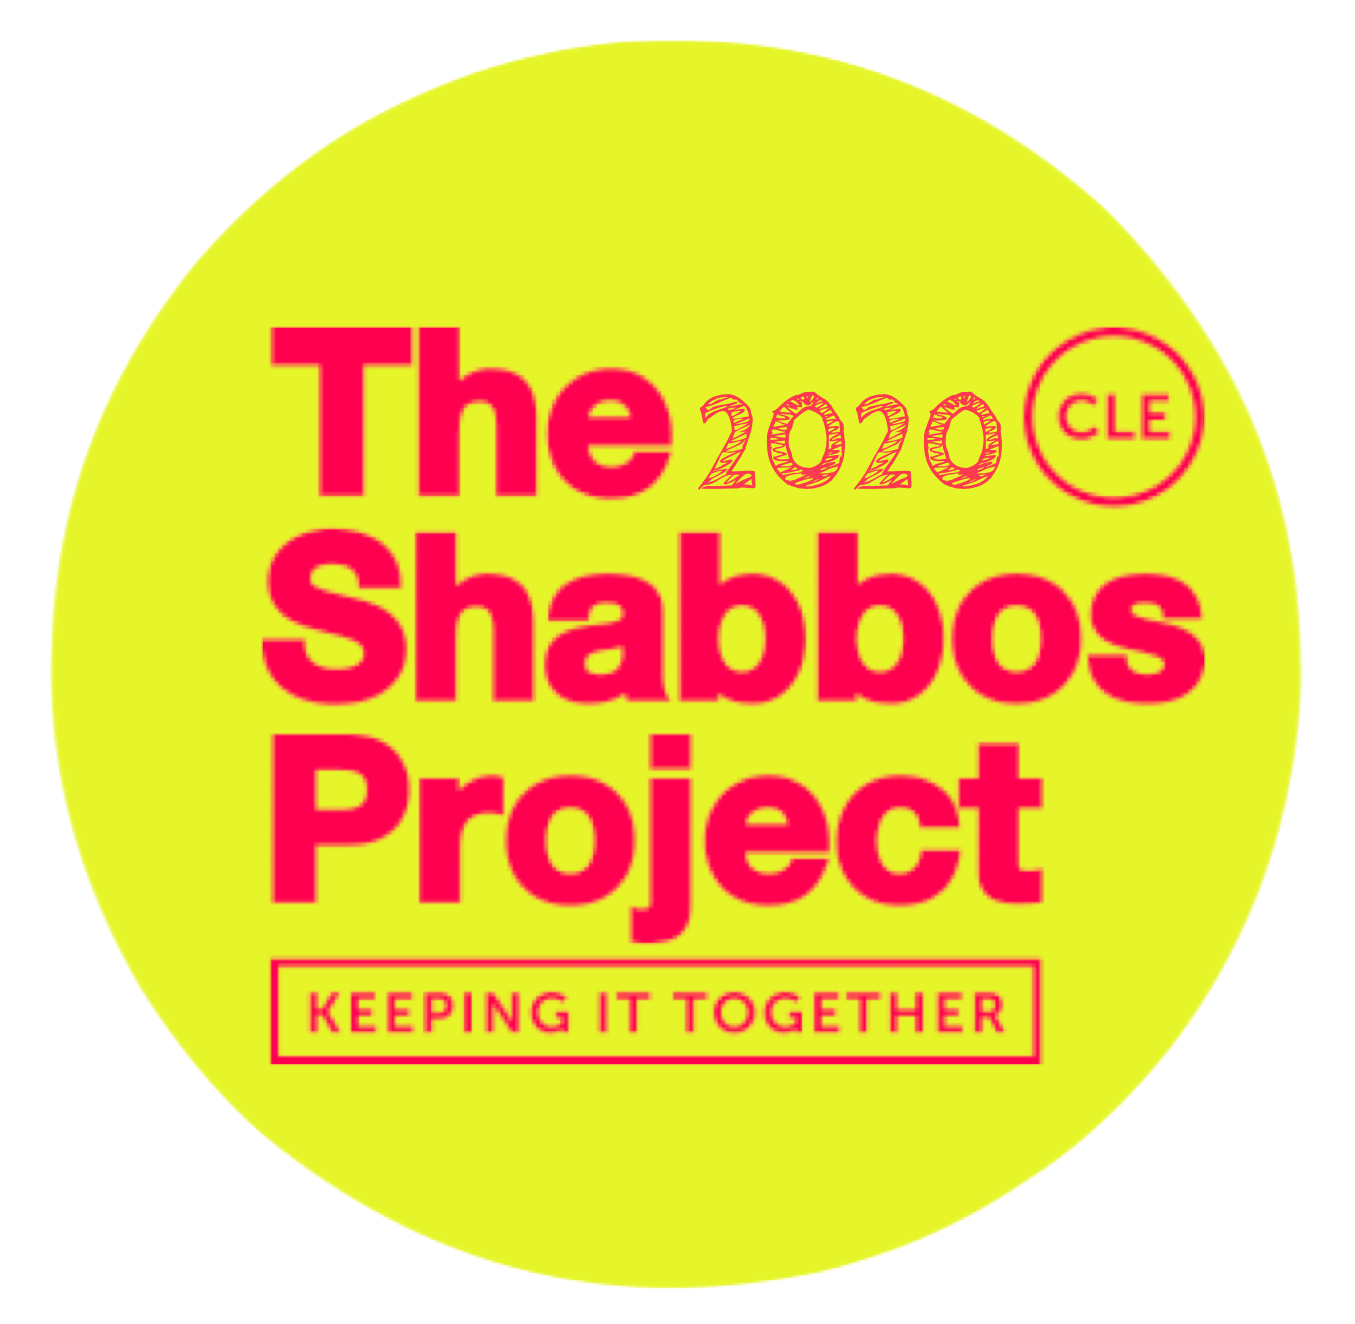 The Shabbos Project